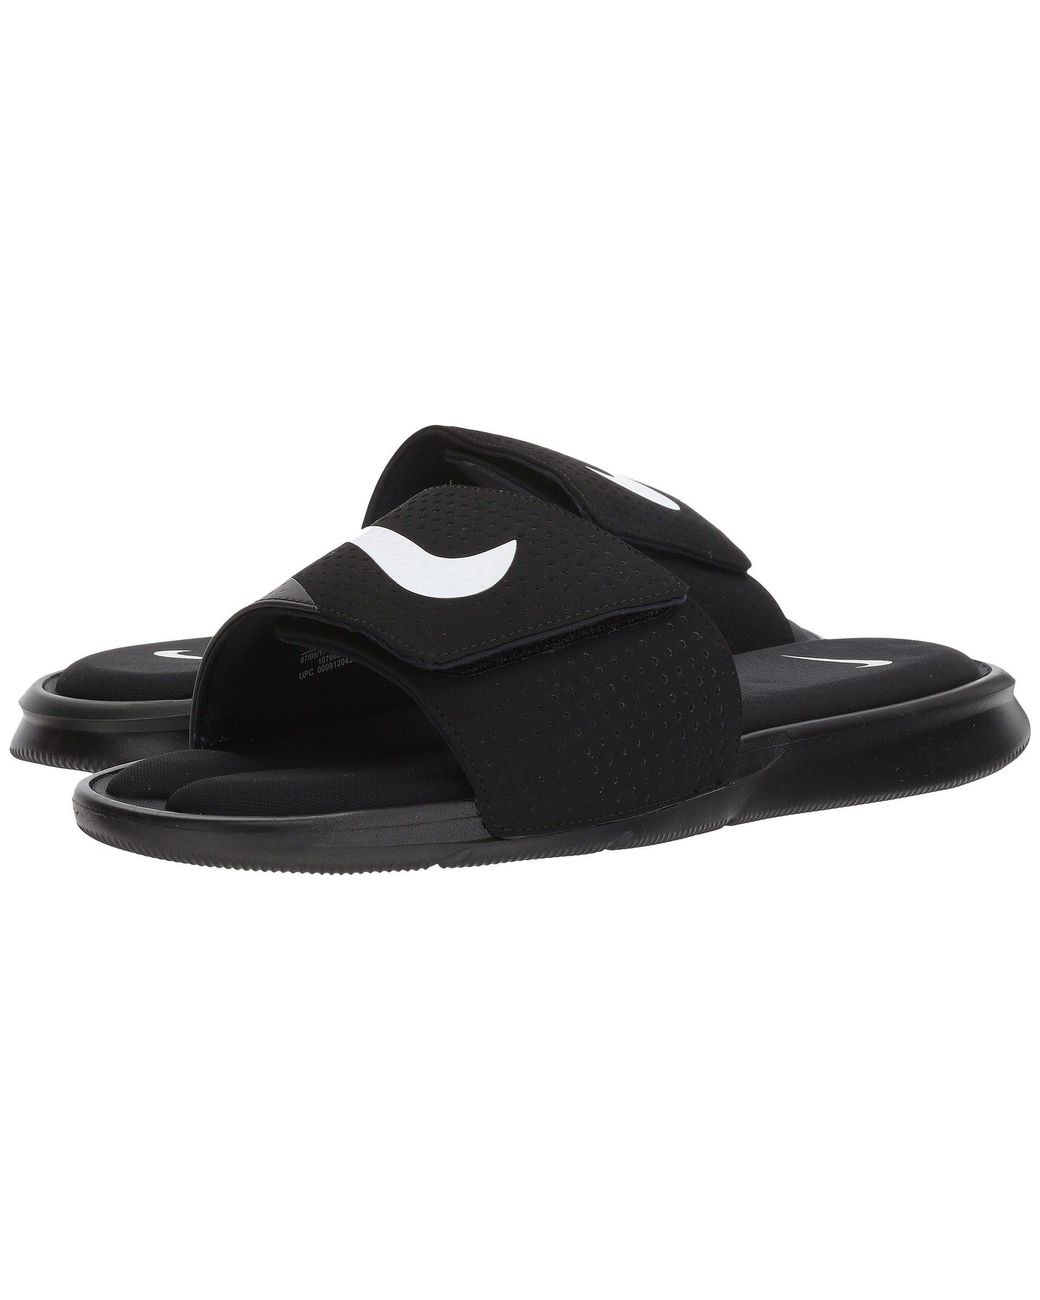 ab34f2f23 Lyst - Nike Ultra Comfort Slide (black white black) Men s Sandals in Black  for Men - Save 25%